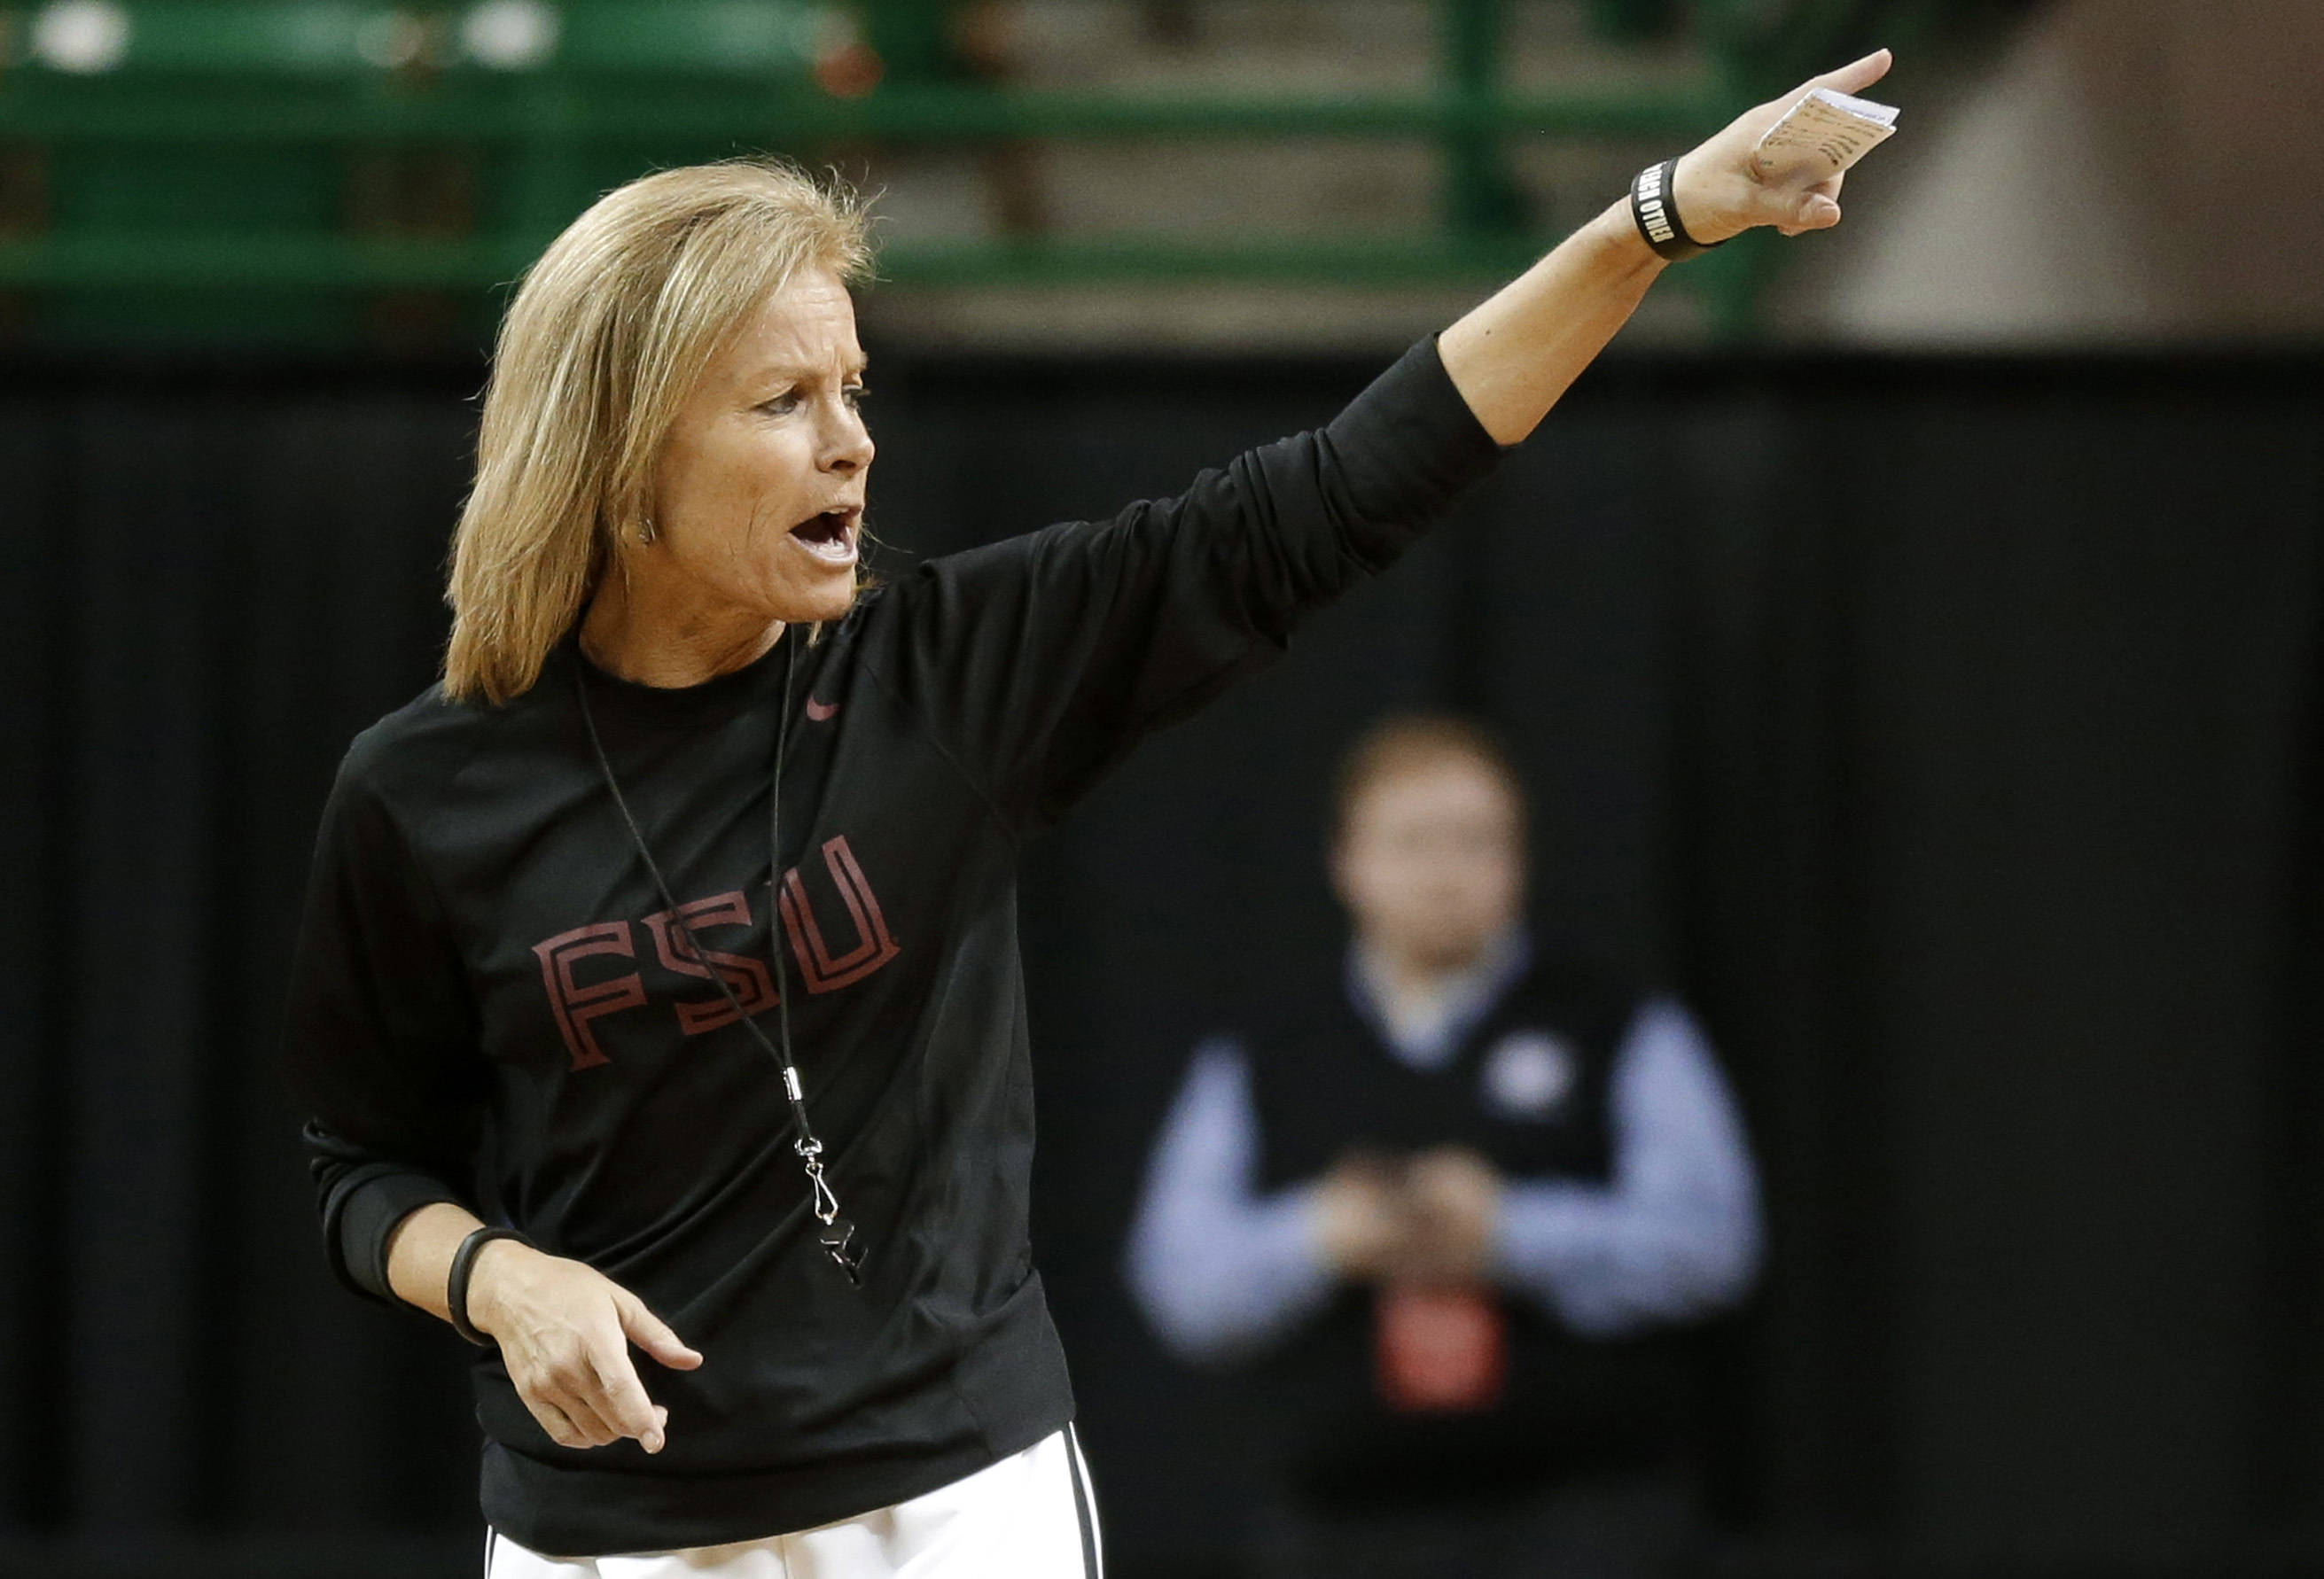 Florida State head coach Sue Semrau instructs her team during practice for a first-round game in the women's NCAA college basketball tournament Saturday, March 23, 2013, in Waco, Texas. FSU will play Princeton on Sunday. (AP Photo/Tony Gutierrez)